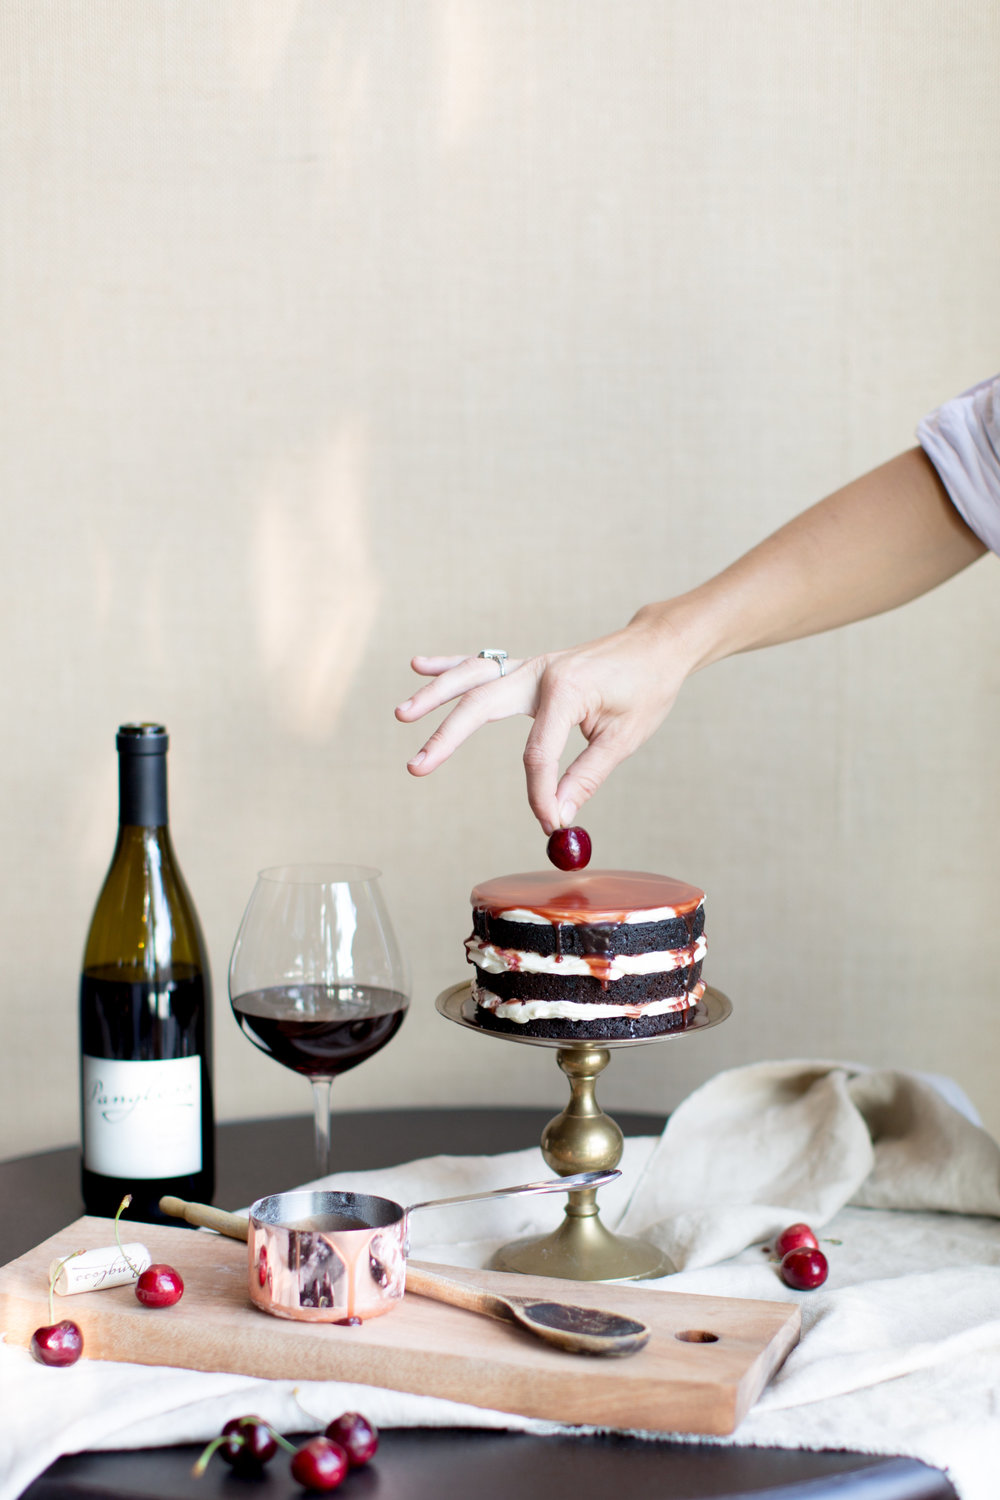 Food styling | Baking with red wine | Cake Bloom + Panglass Collaboration | Pinot Noir Caramel Sauce | The School of Styling - http://www.theschoolofstyling.com